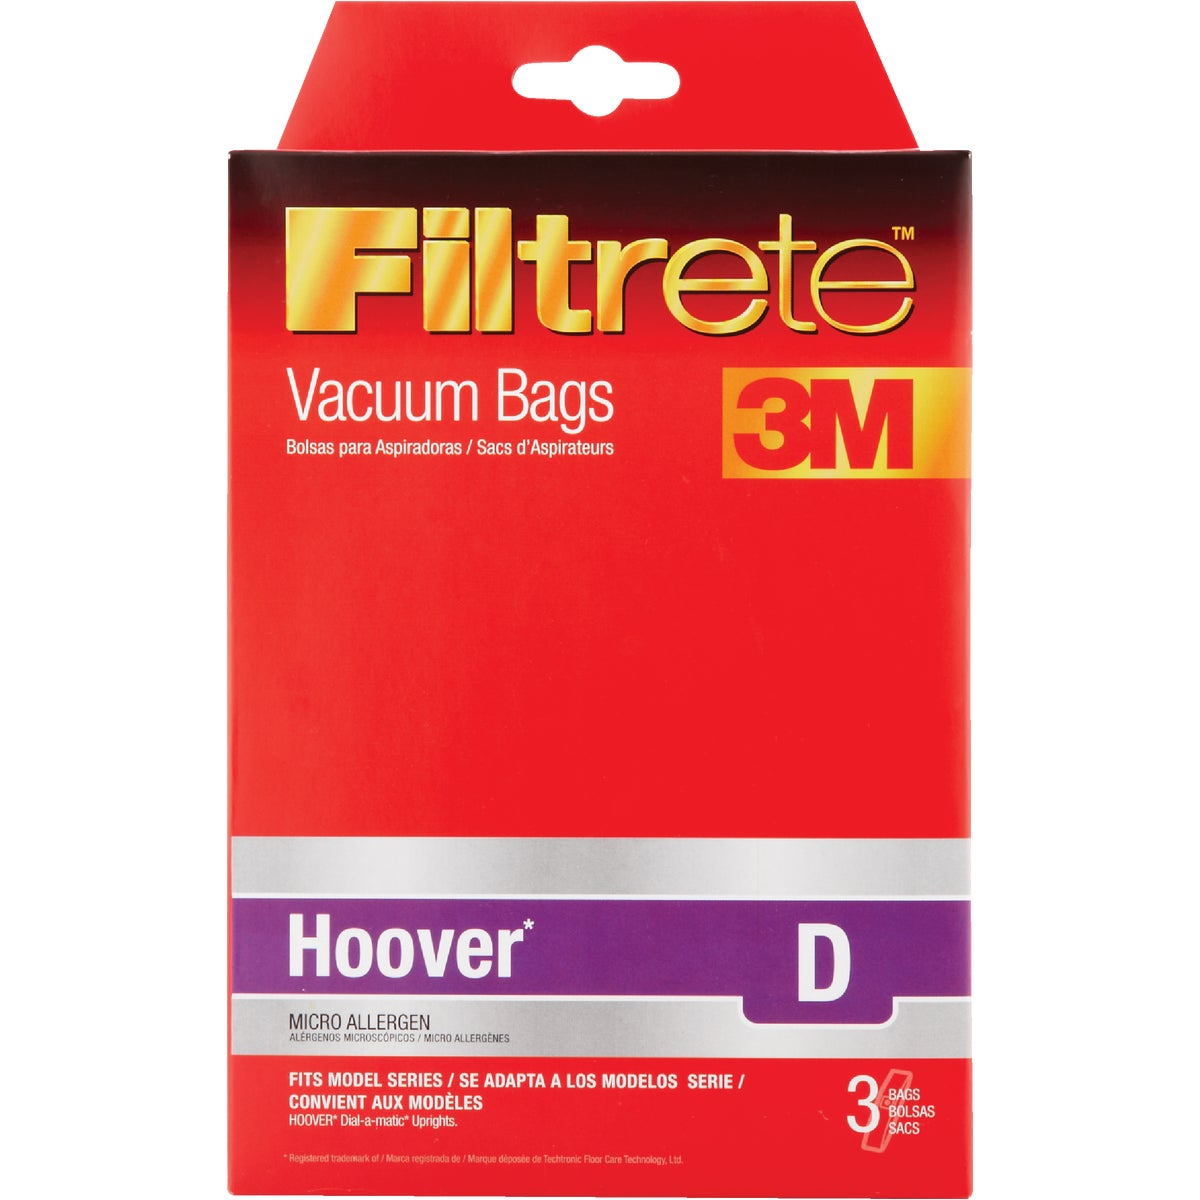 3M HOOVER D VACUUM BAG - 64711-6 by Electrolux Home Care